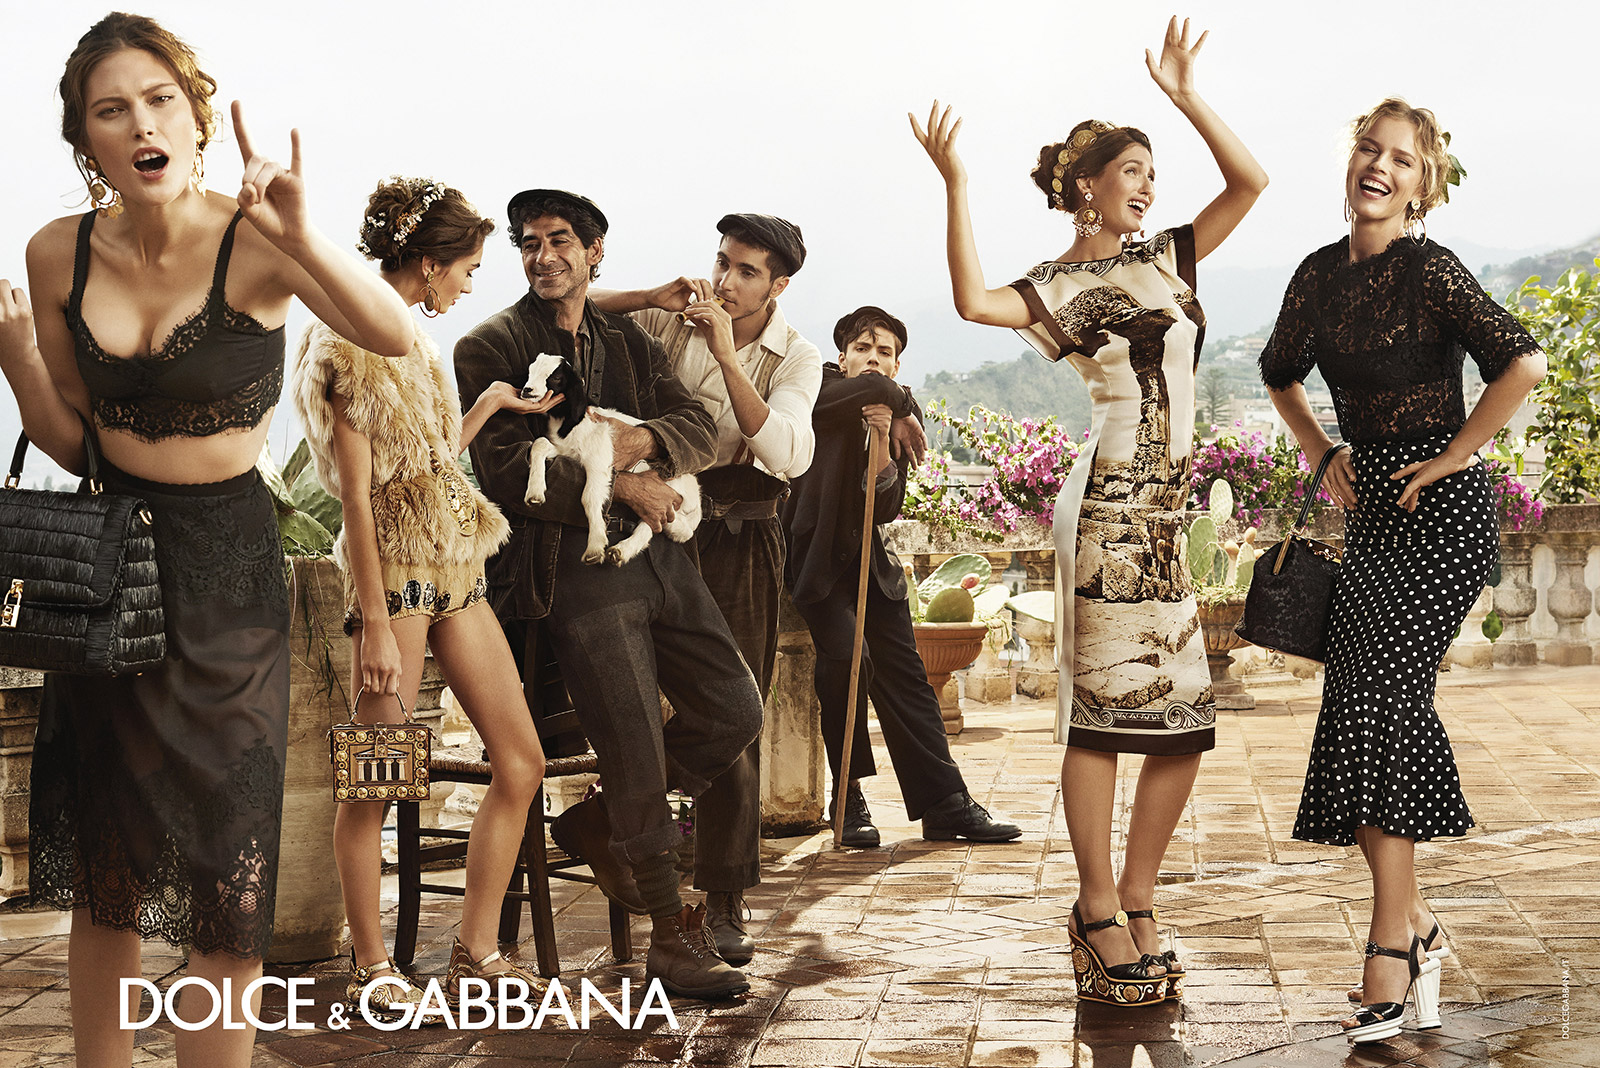 dolce-and-gabbana-ss-2014-womens-advertising-campaign-06-zoom1